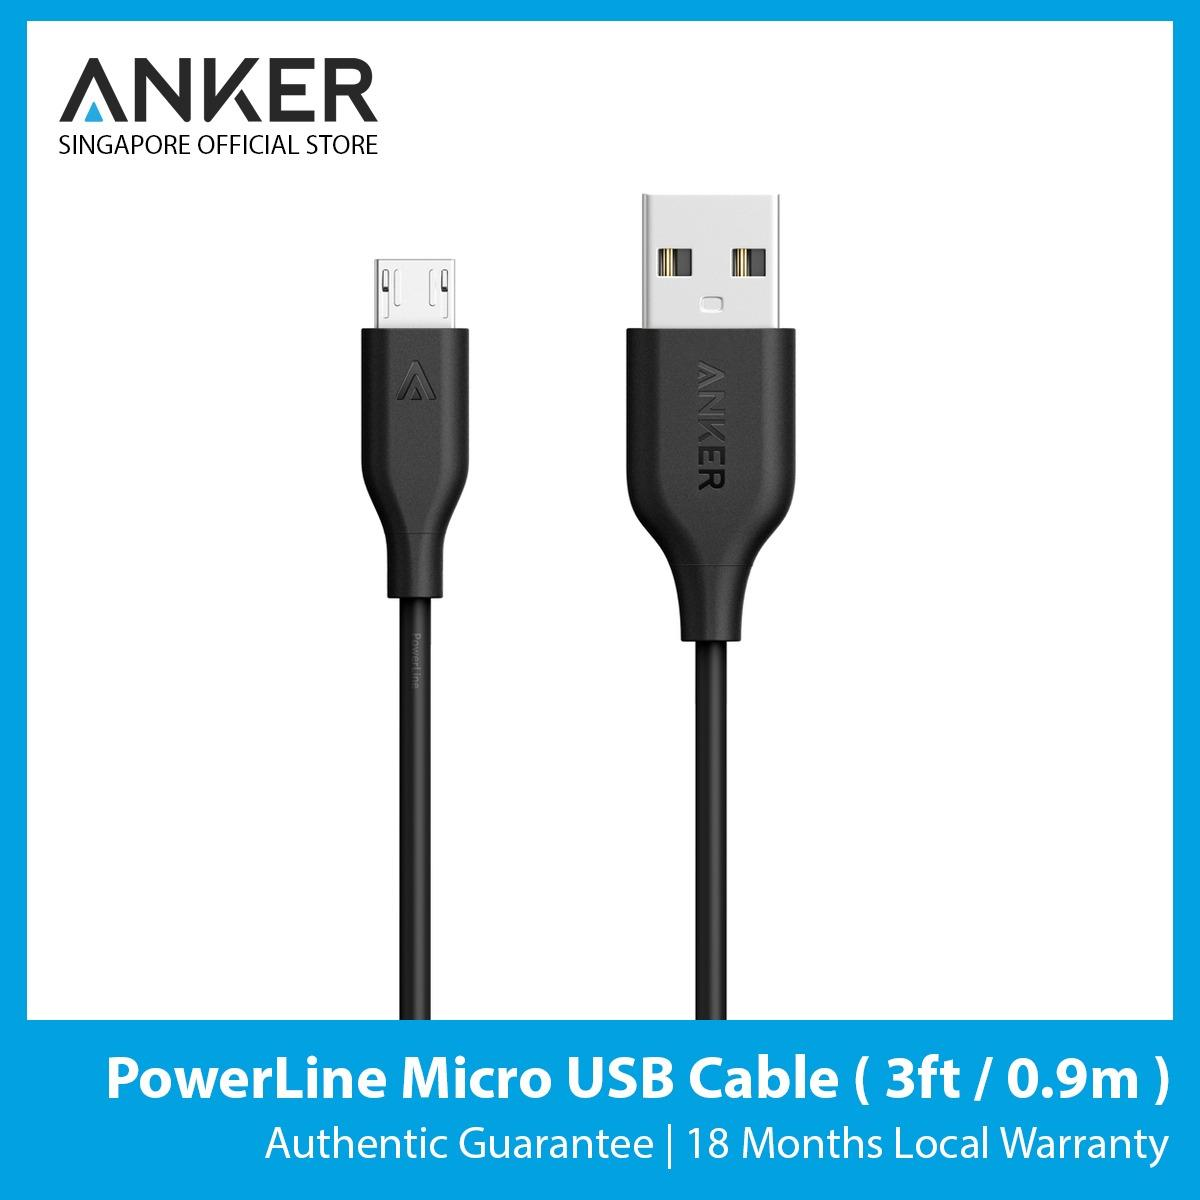 Anker Powerline Micro Usb Cable 3Ft 9M Compare Prices